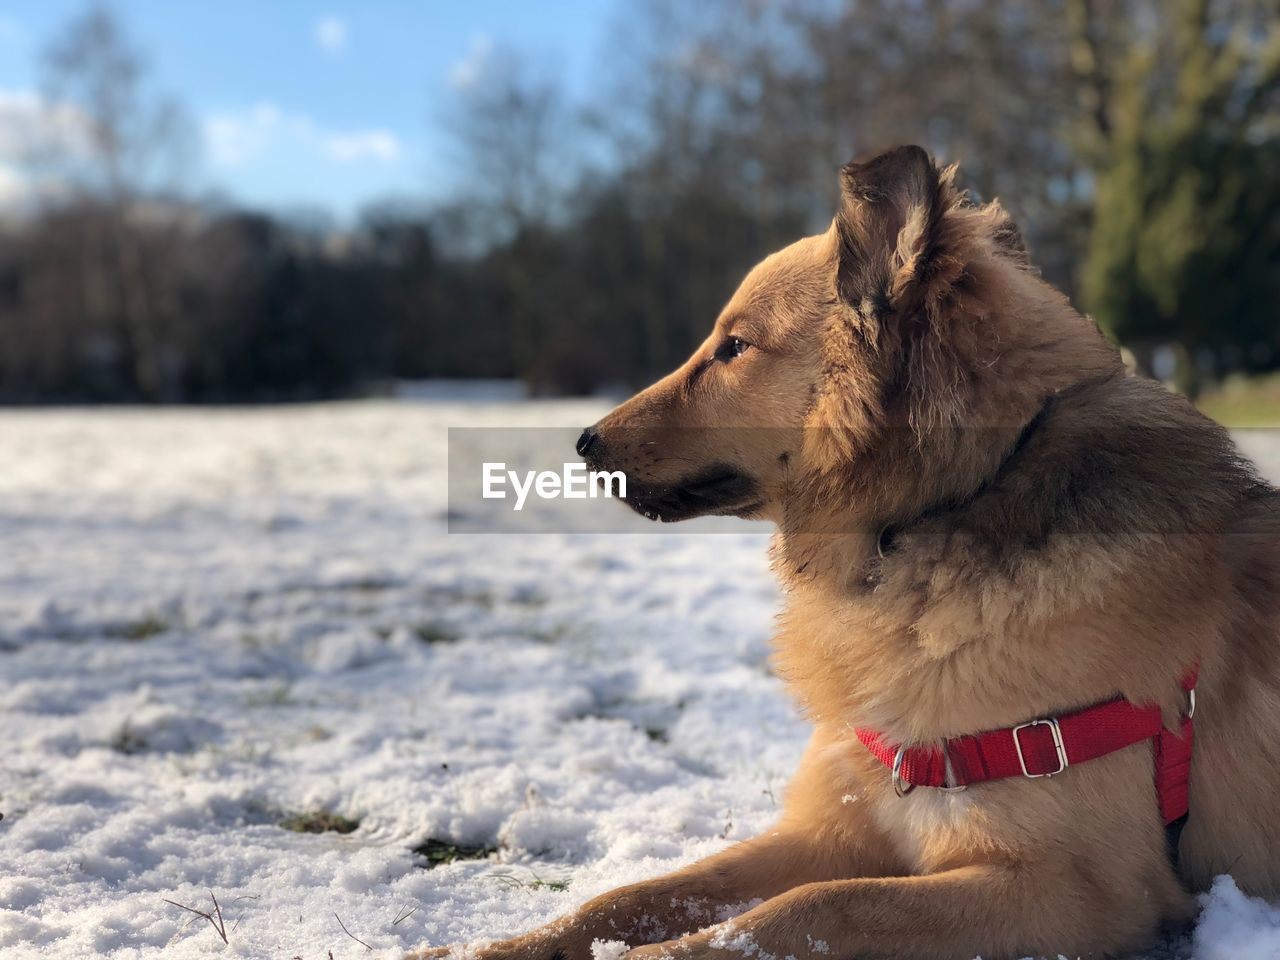 dog, canine, one animal, pets, domestic, domestic animals, animal themes, animal, mammal, looking, looking away, vertebrate, winter, land, cold temperature, snow, focus on foreground, day, nature, no people, outdoors, animal head, purebred dog, profile view